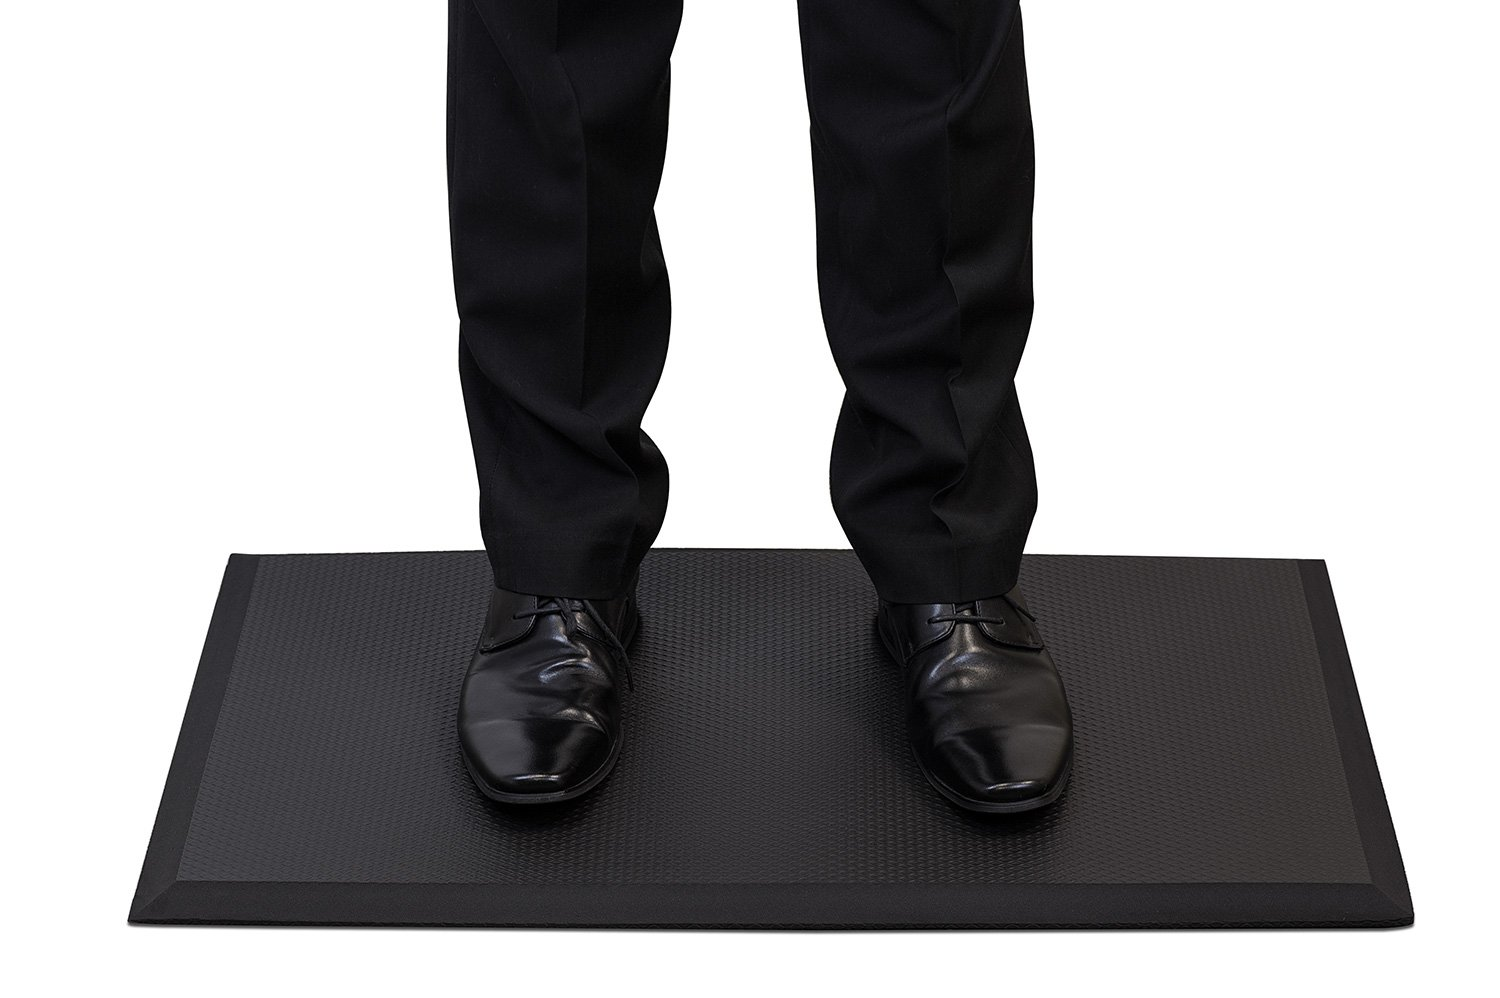 Mount-It! Anti-Fatigue Mat For Standing Desk, Kitchens, Garages, Premium Quality Rubber Gel, 17.7 inches (W) x 29.5 inches (L), Soft Ergonomic Comfort, Black